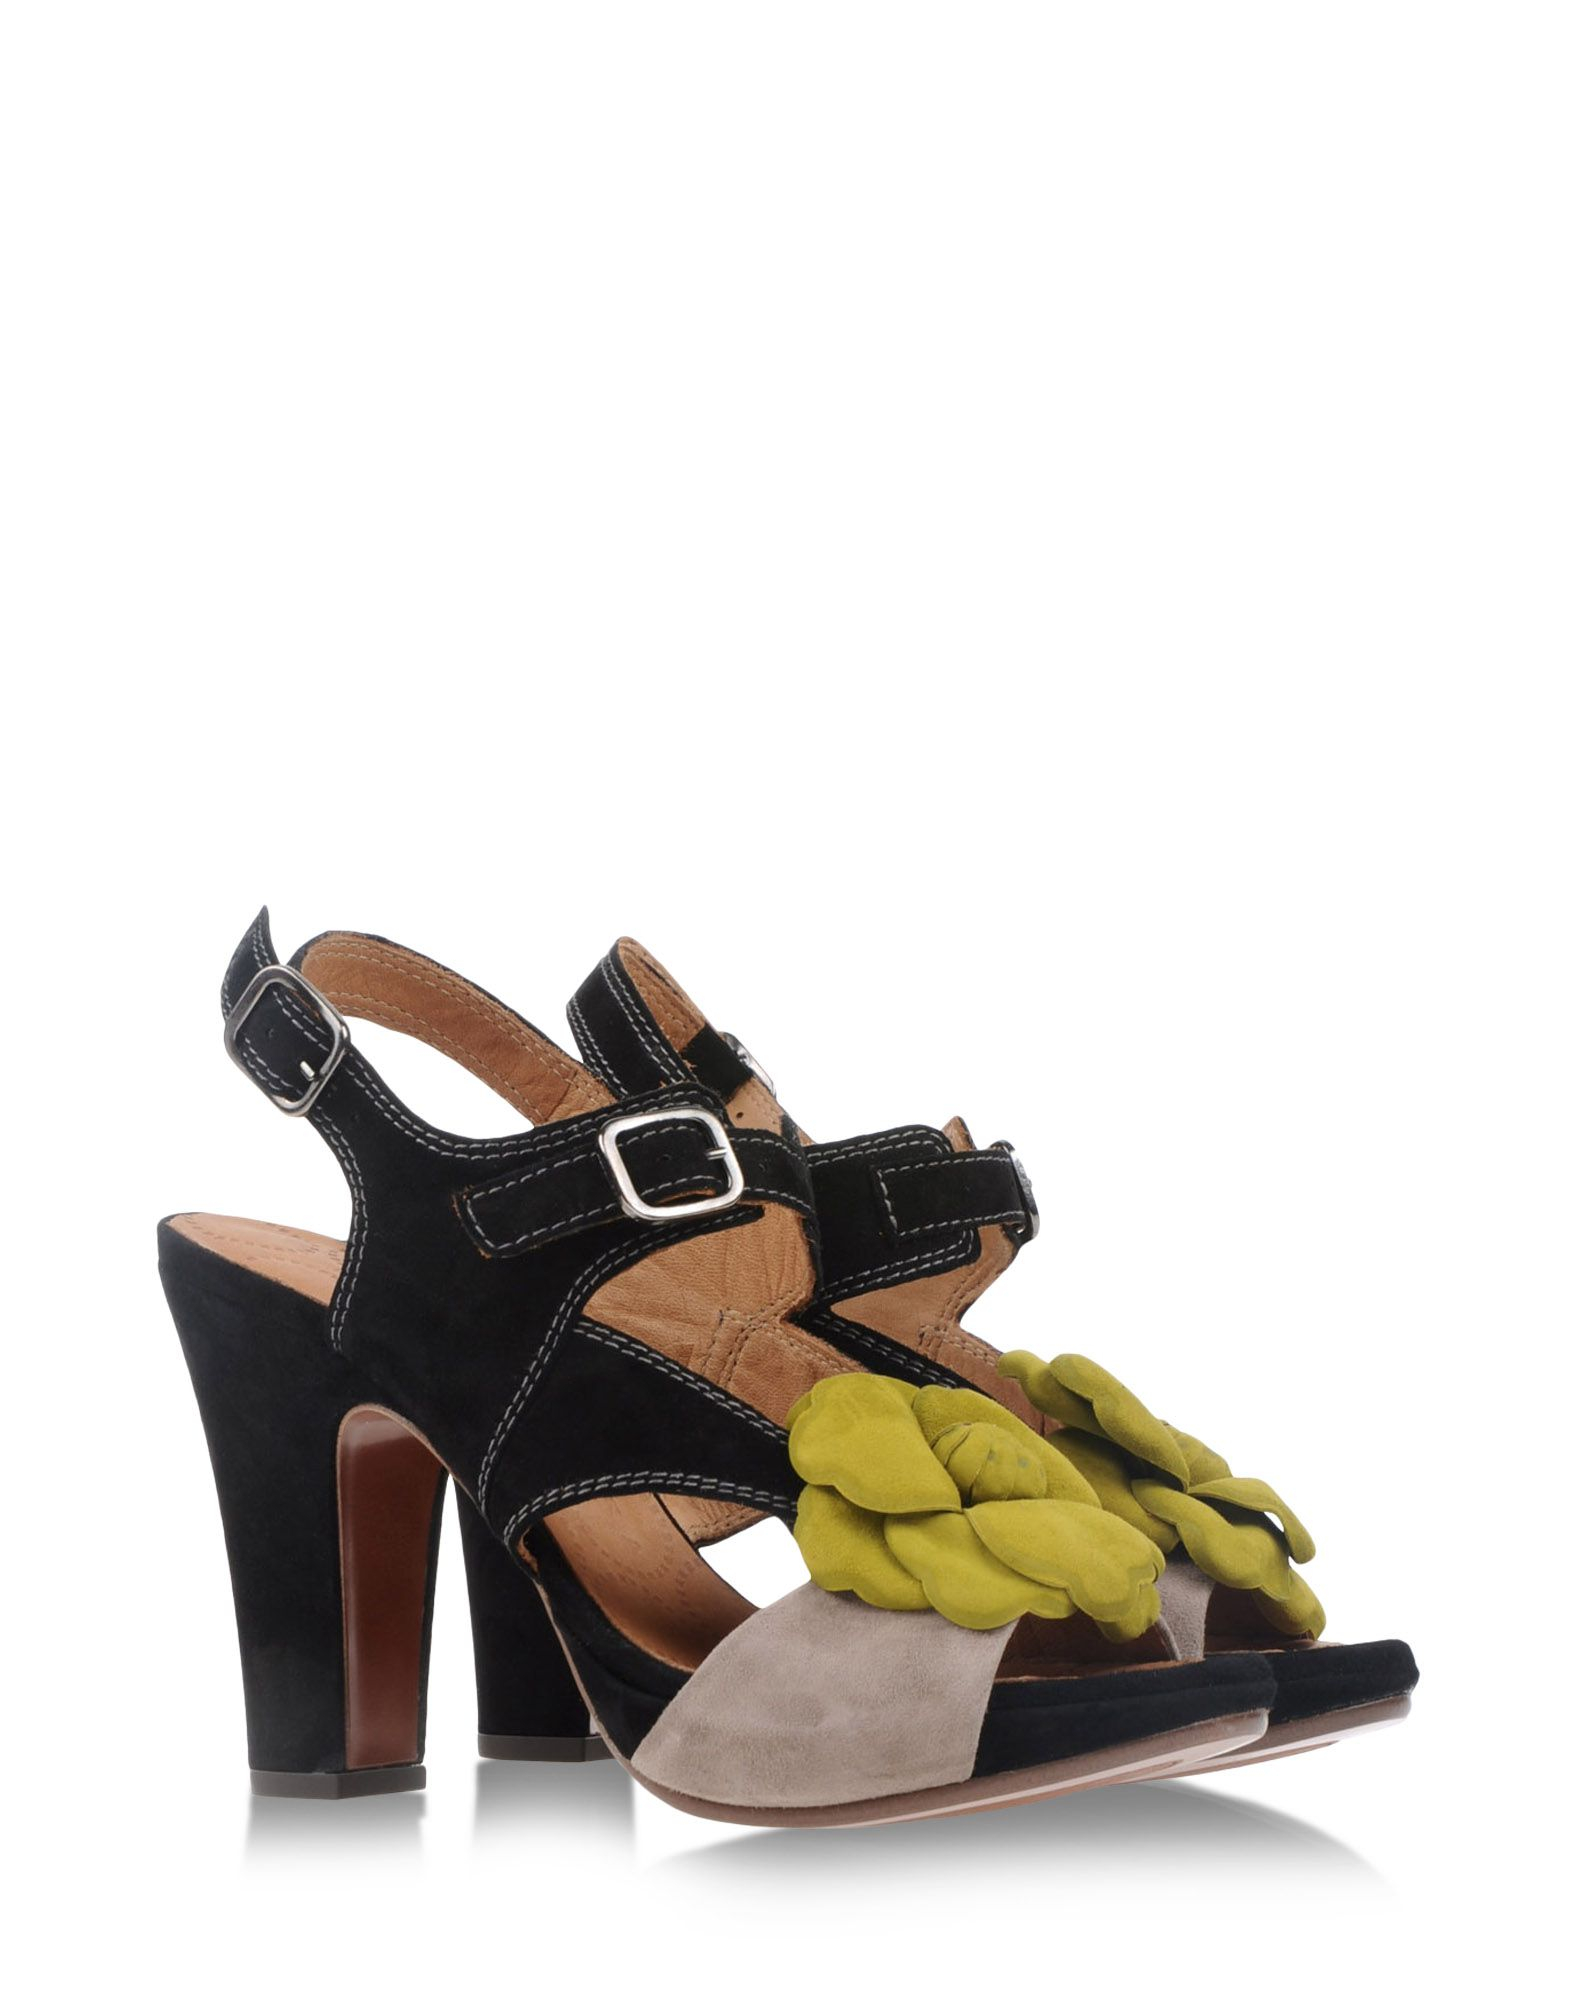 Chie Mihara Sandals In Yellow Black Lyst